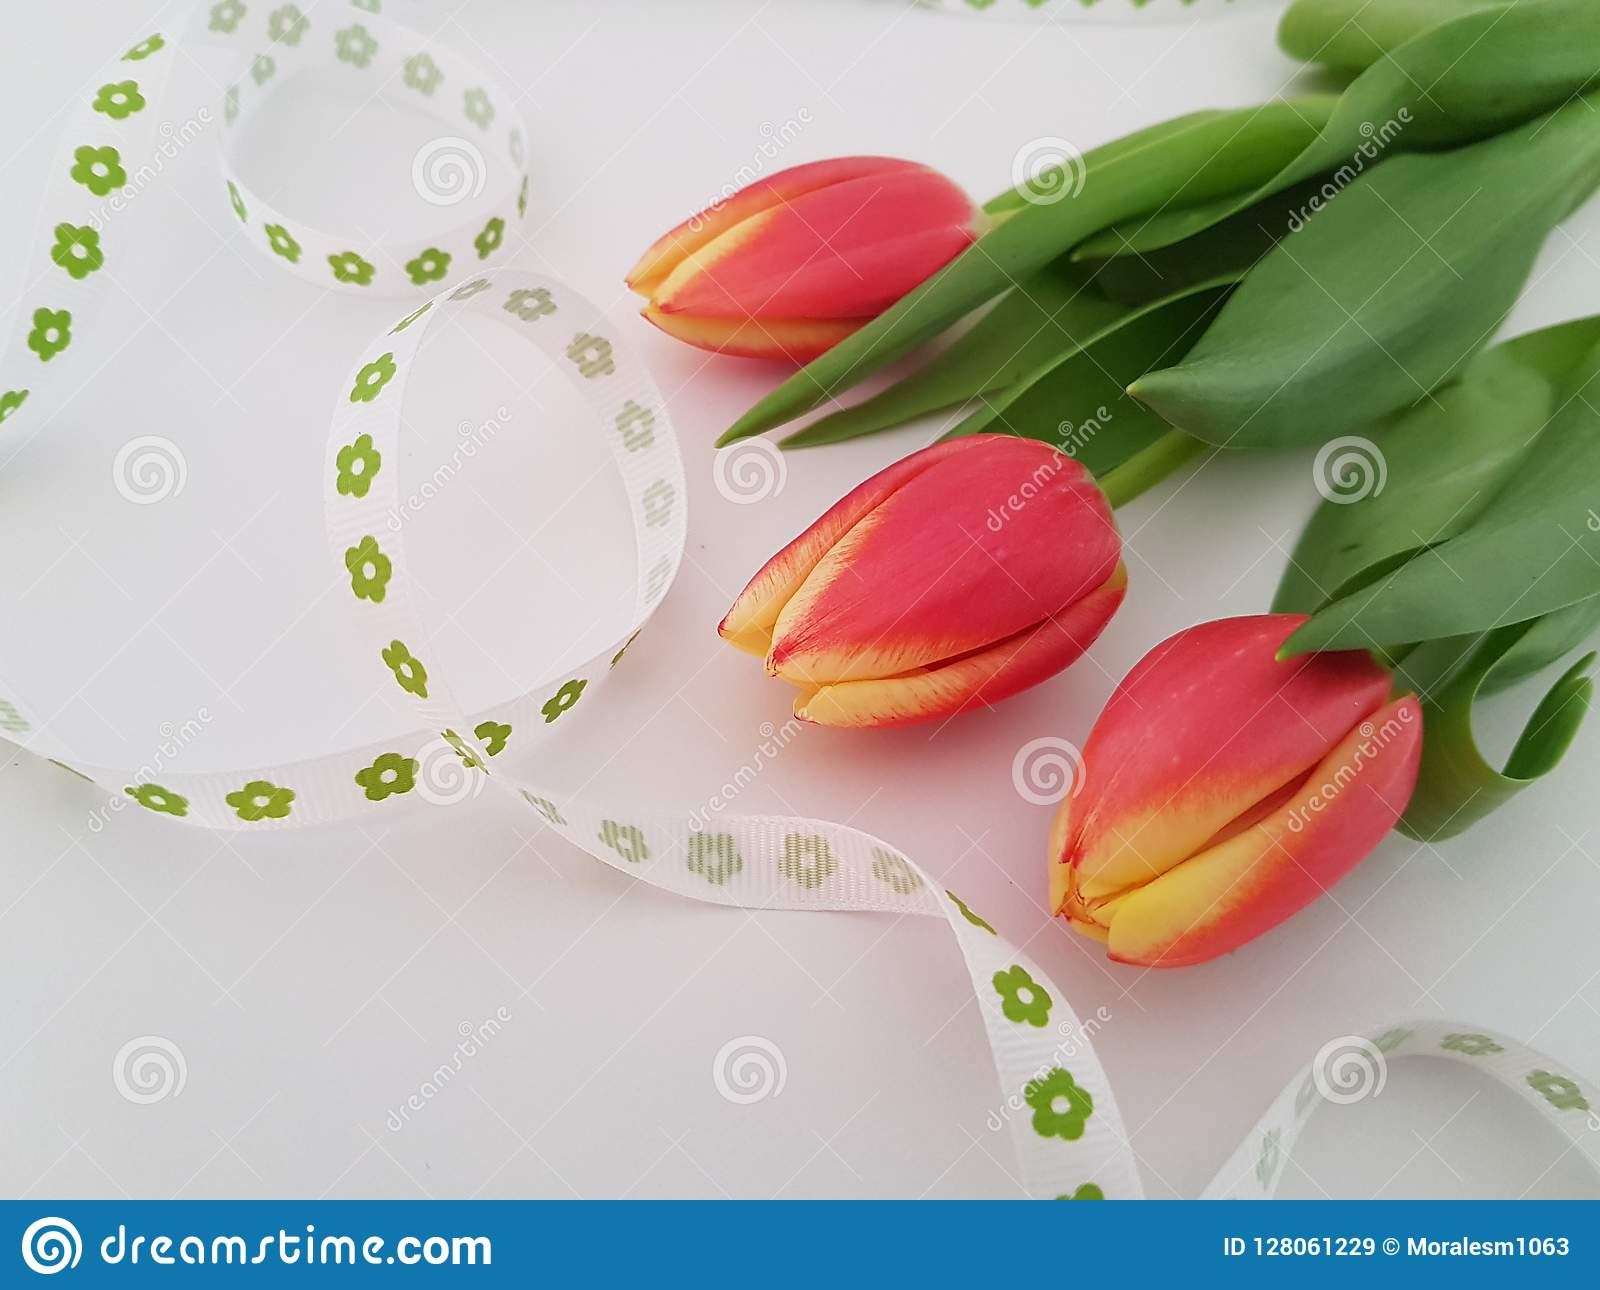 Tulips Laying On A White Background Stock Image Image Of